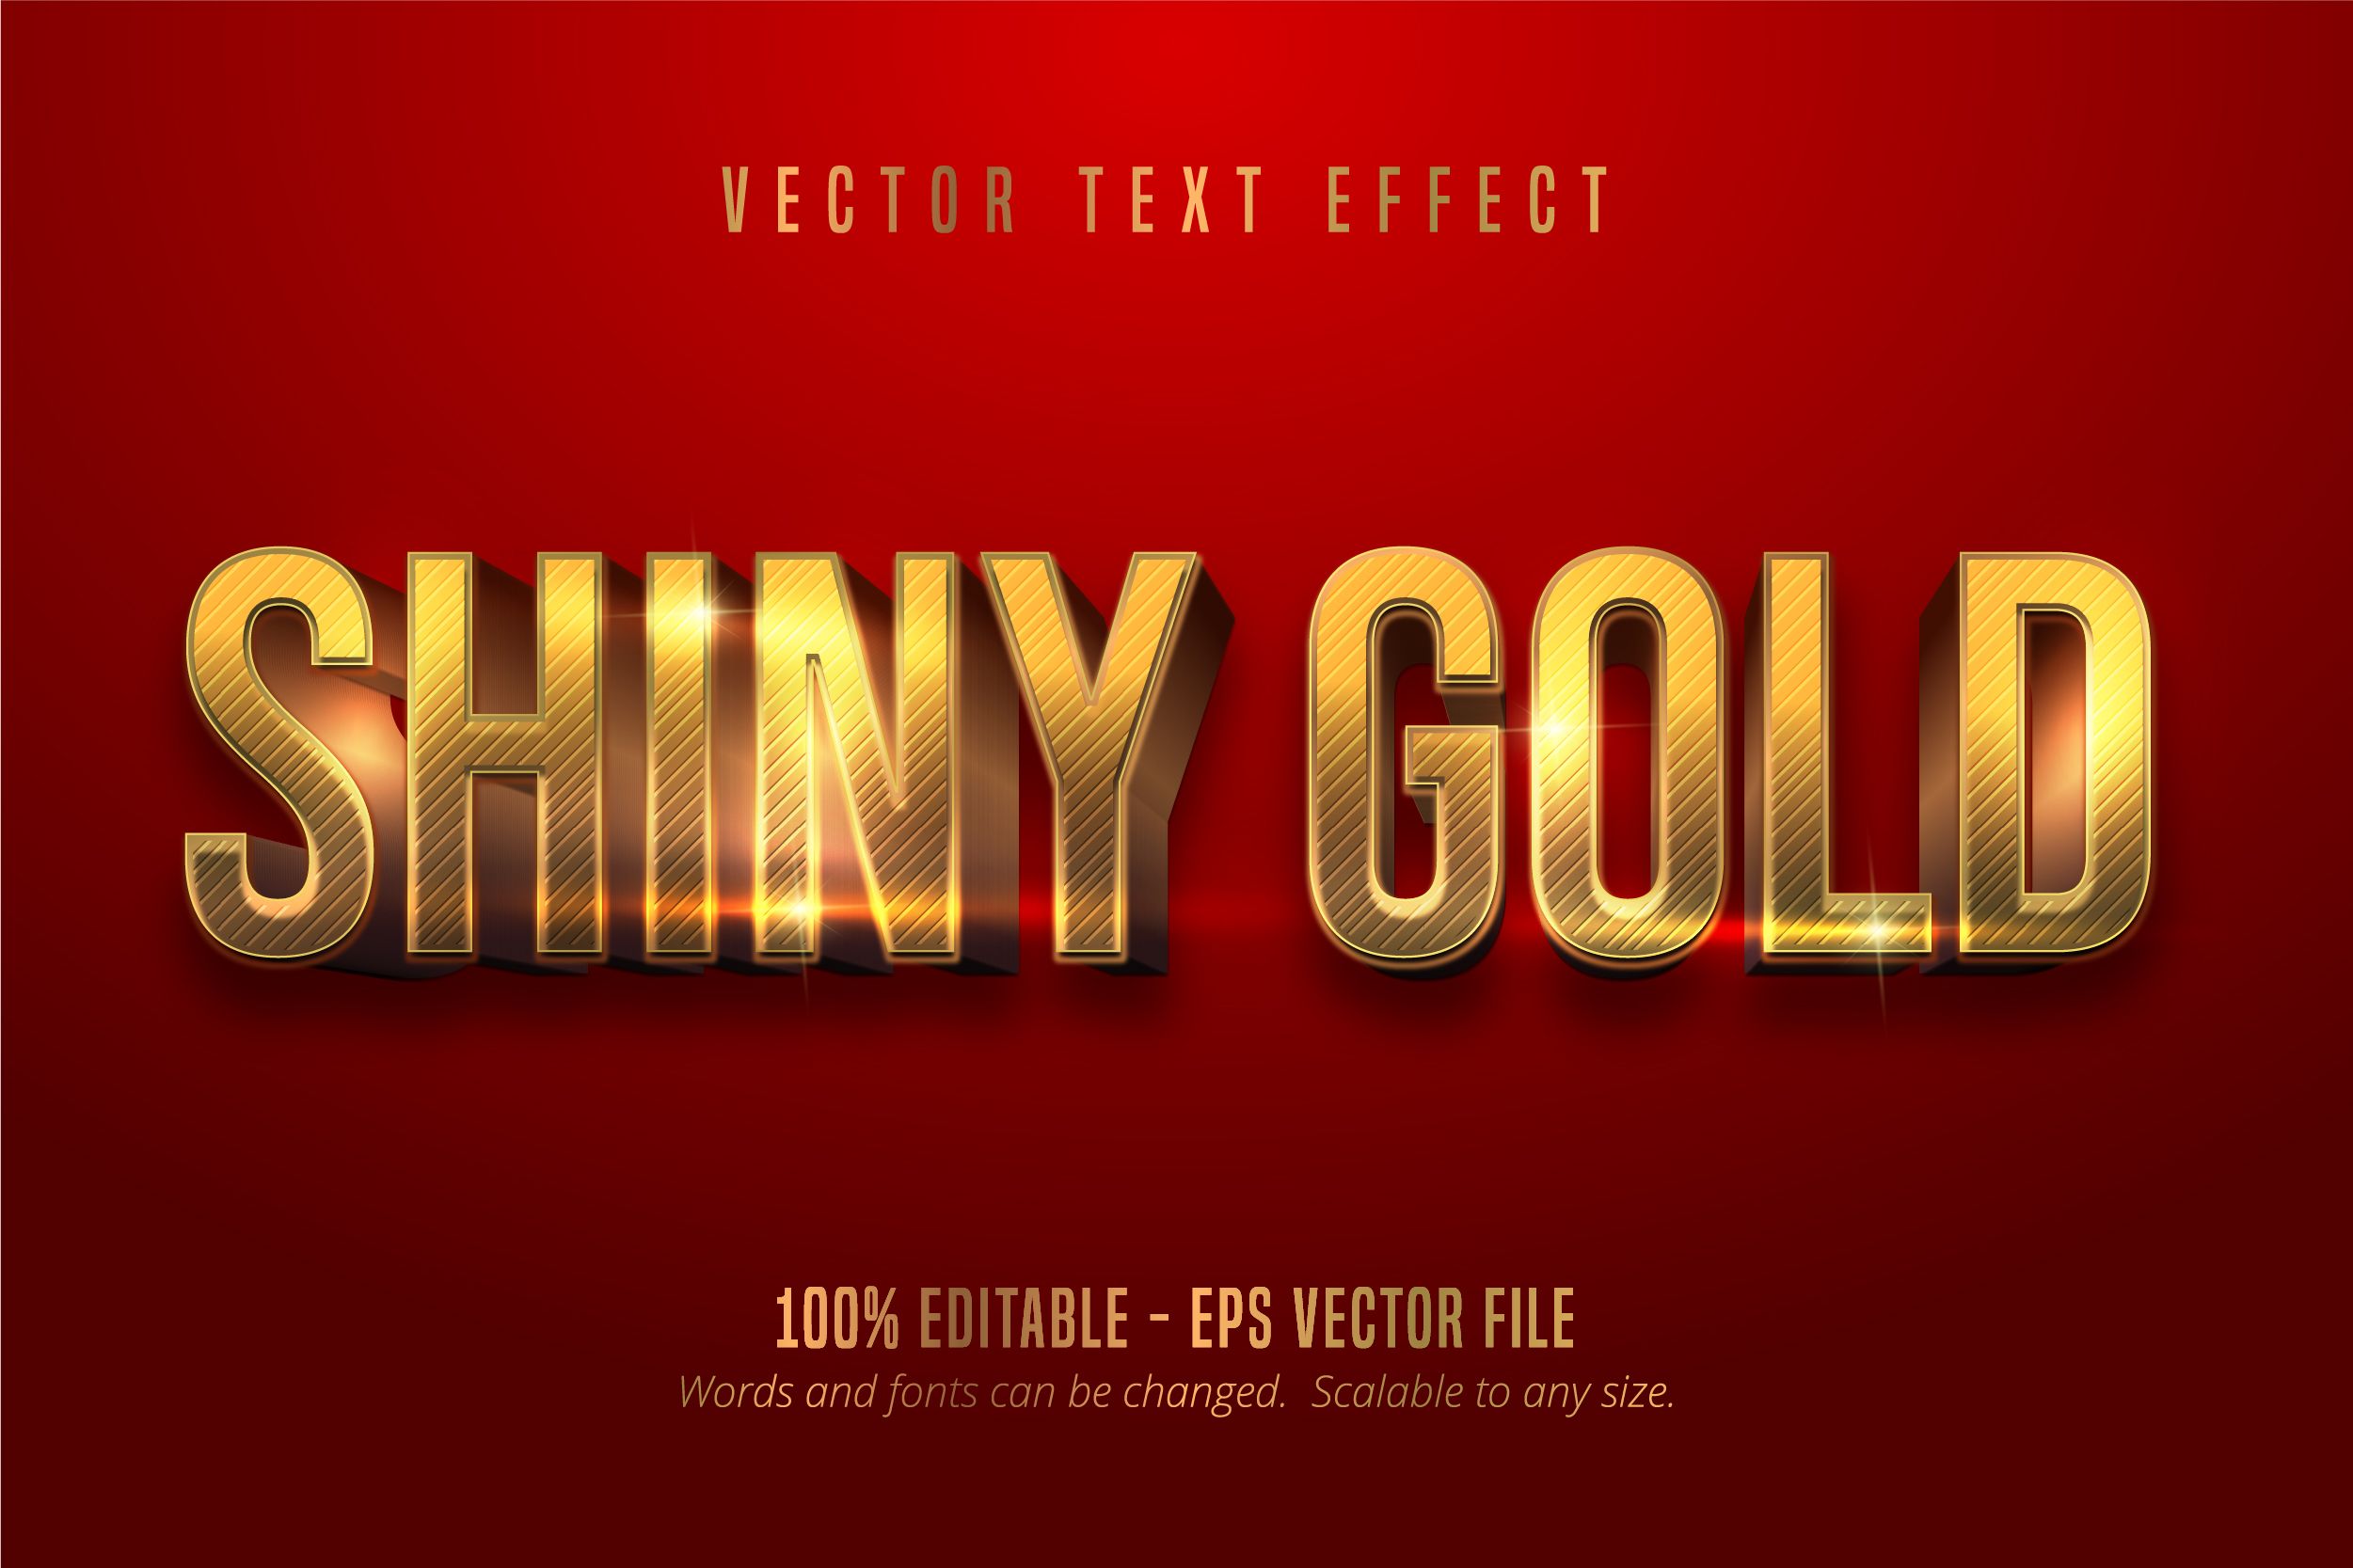 Download Free Shiny Gold Style Editable Text Effect Graphic By Mustafa Beksen for Cricut Explore, Silhouette and other cutting machines.